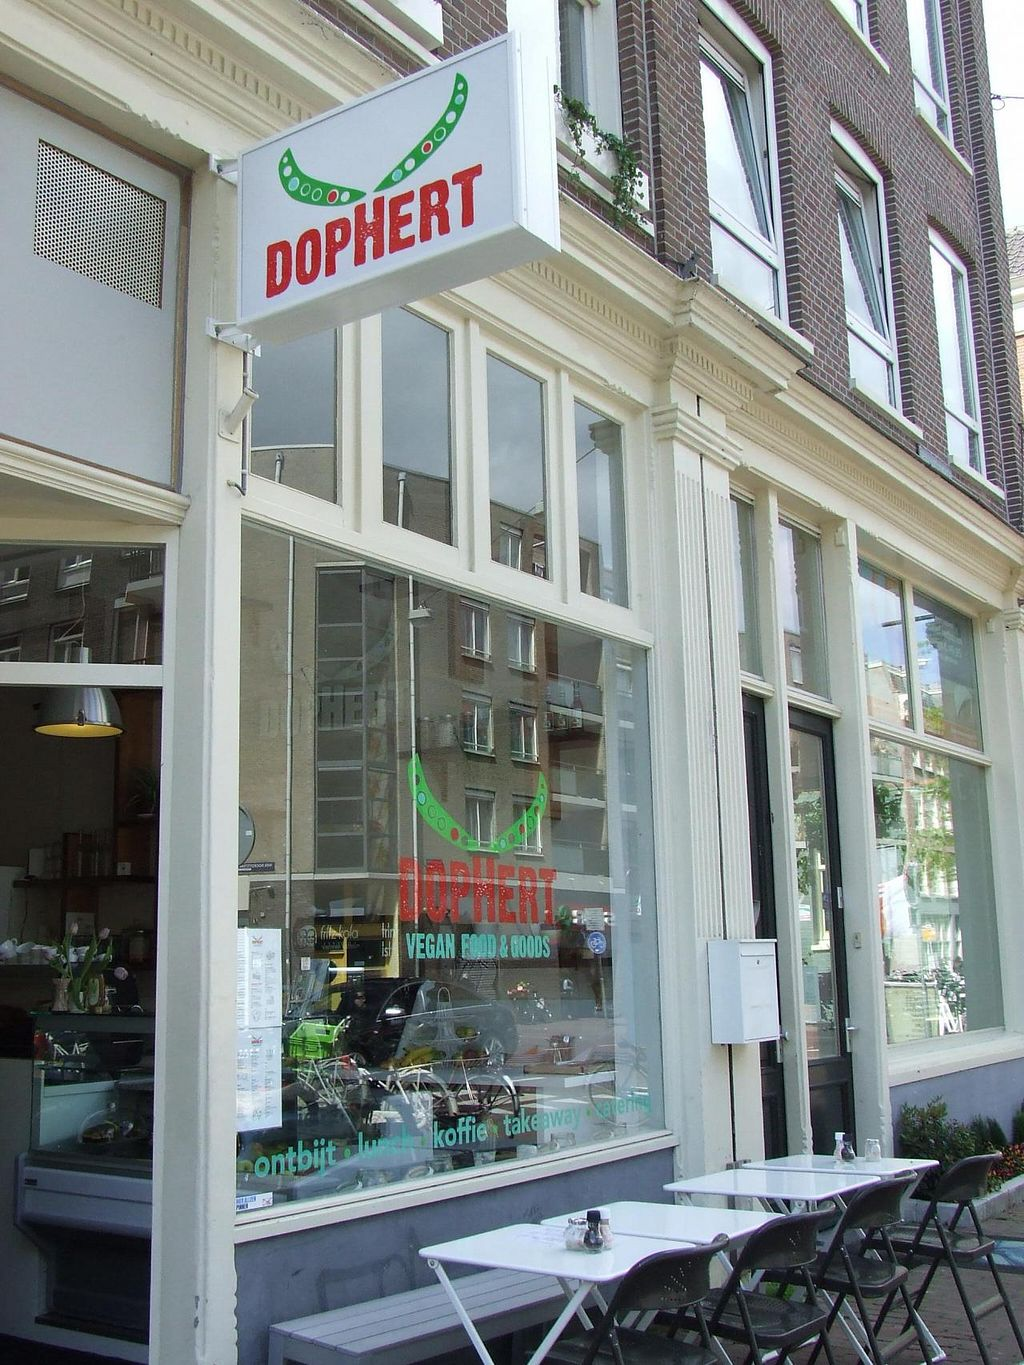 "Photo of DopHert  by <a href=""/members/profile/v_mdj"">v_mdj</a> <br/>Dophert <br/> May 4, 2014  - <a href='/contact/abuse/image/37702/69324'>Report</a>"